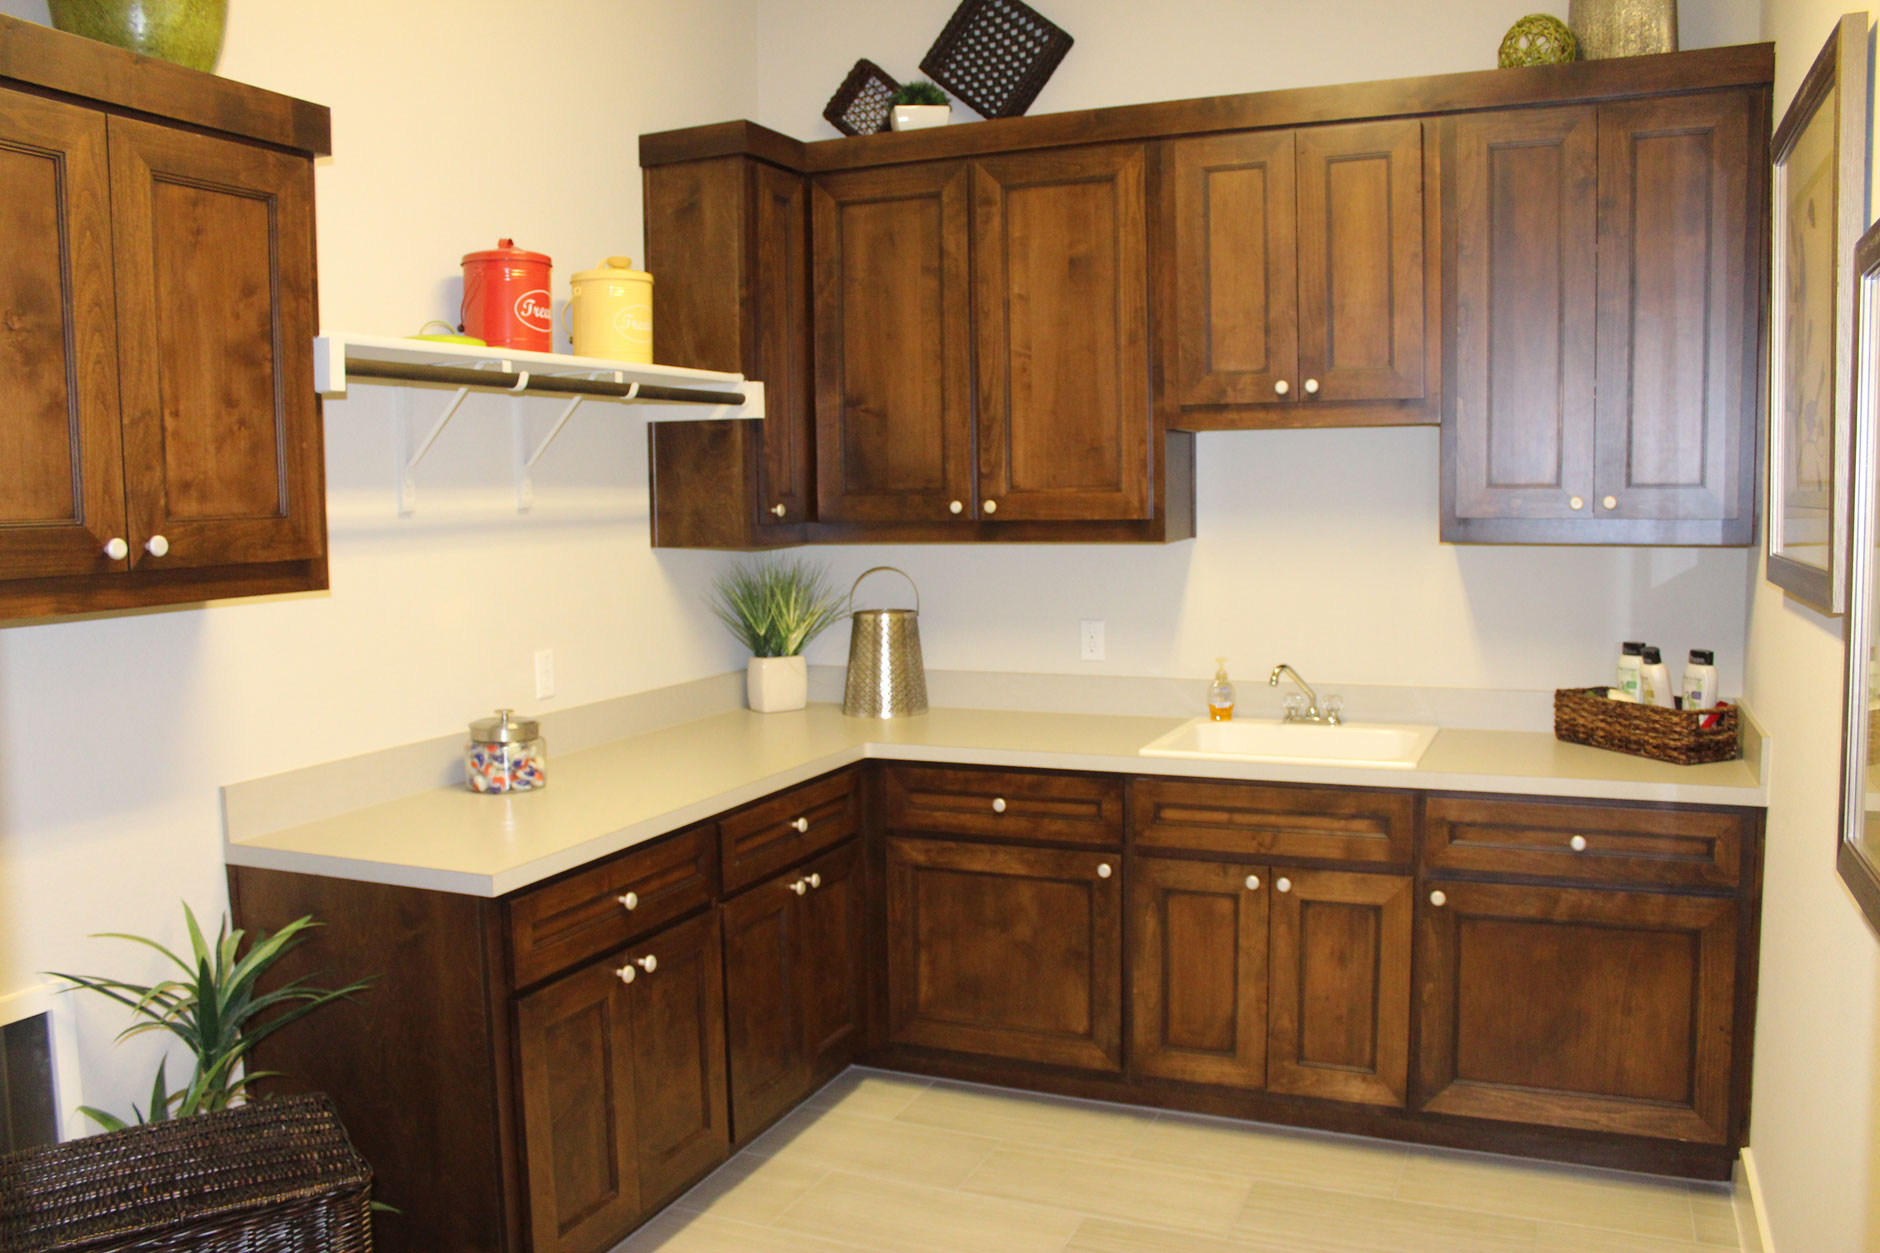 Laundry room cabinets by Burrows Cabinets with Terrazzo doors